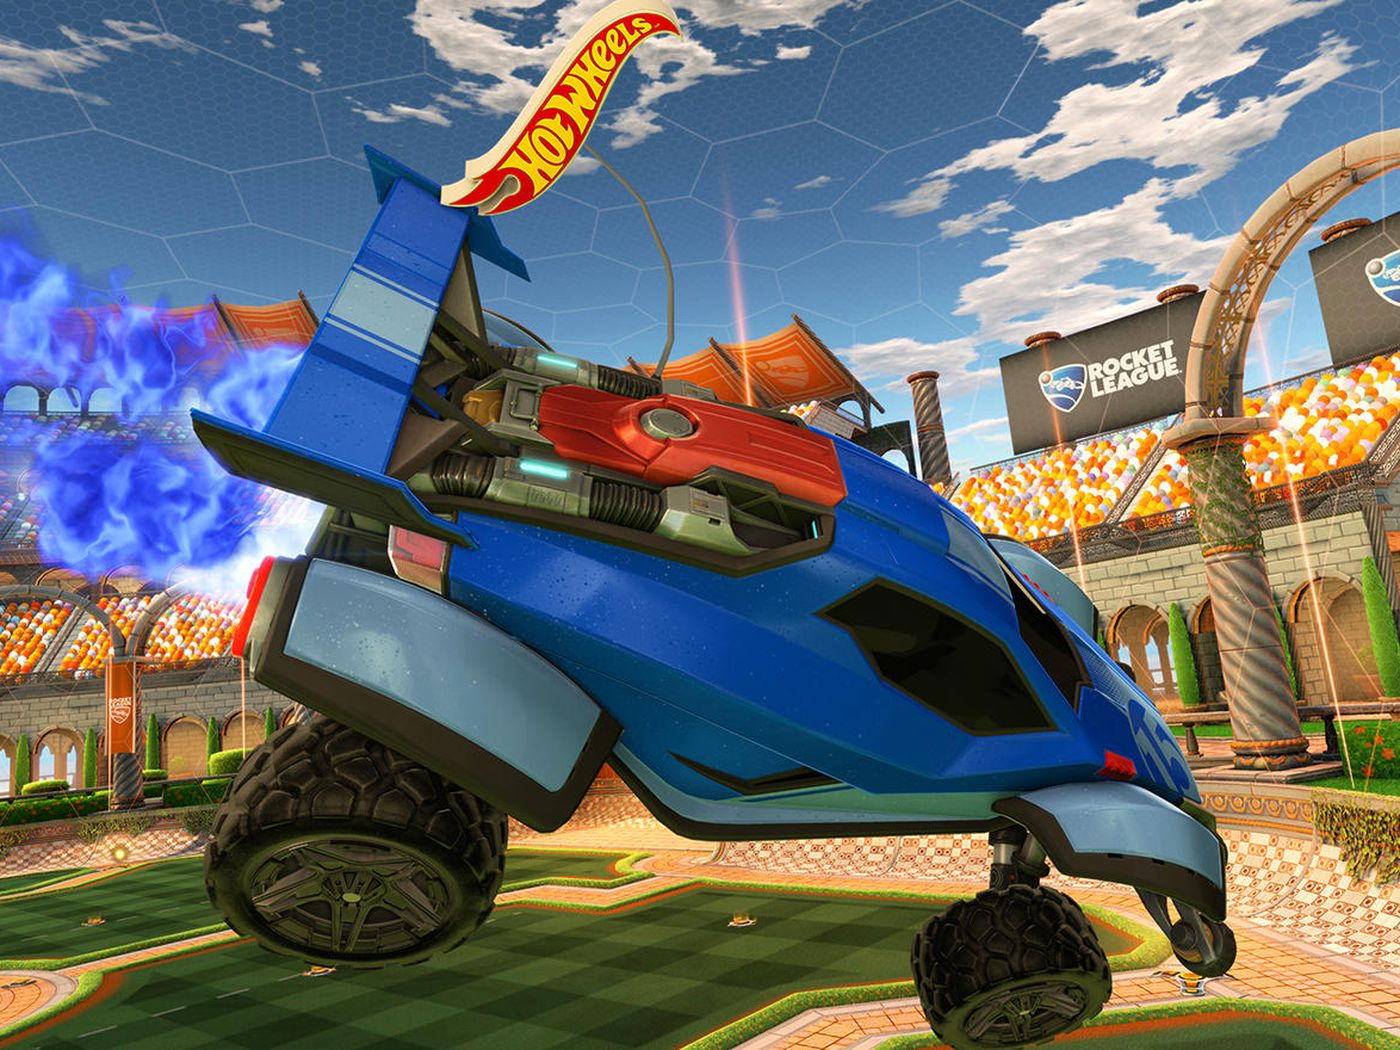 Hot Wheels is bringing Rocket League to life with remote control